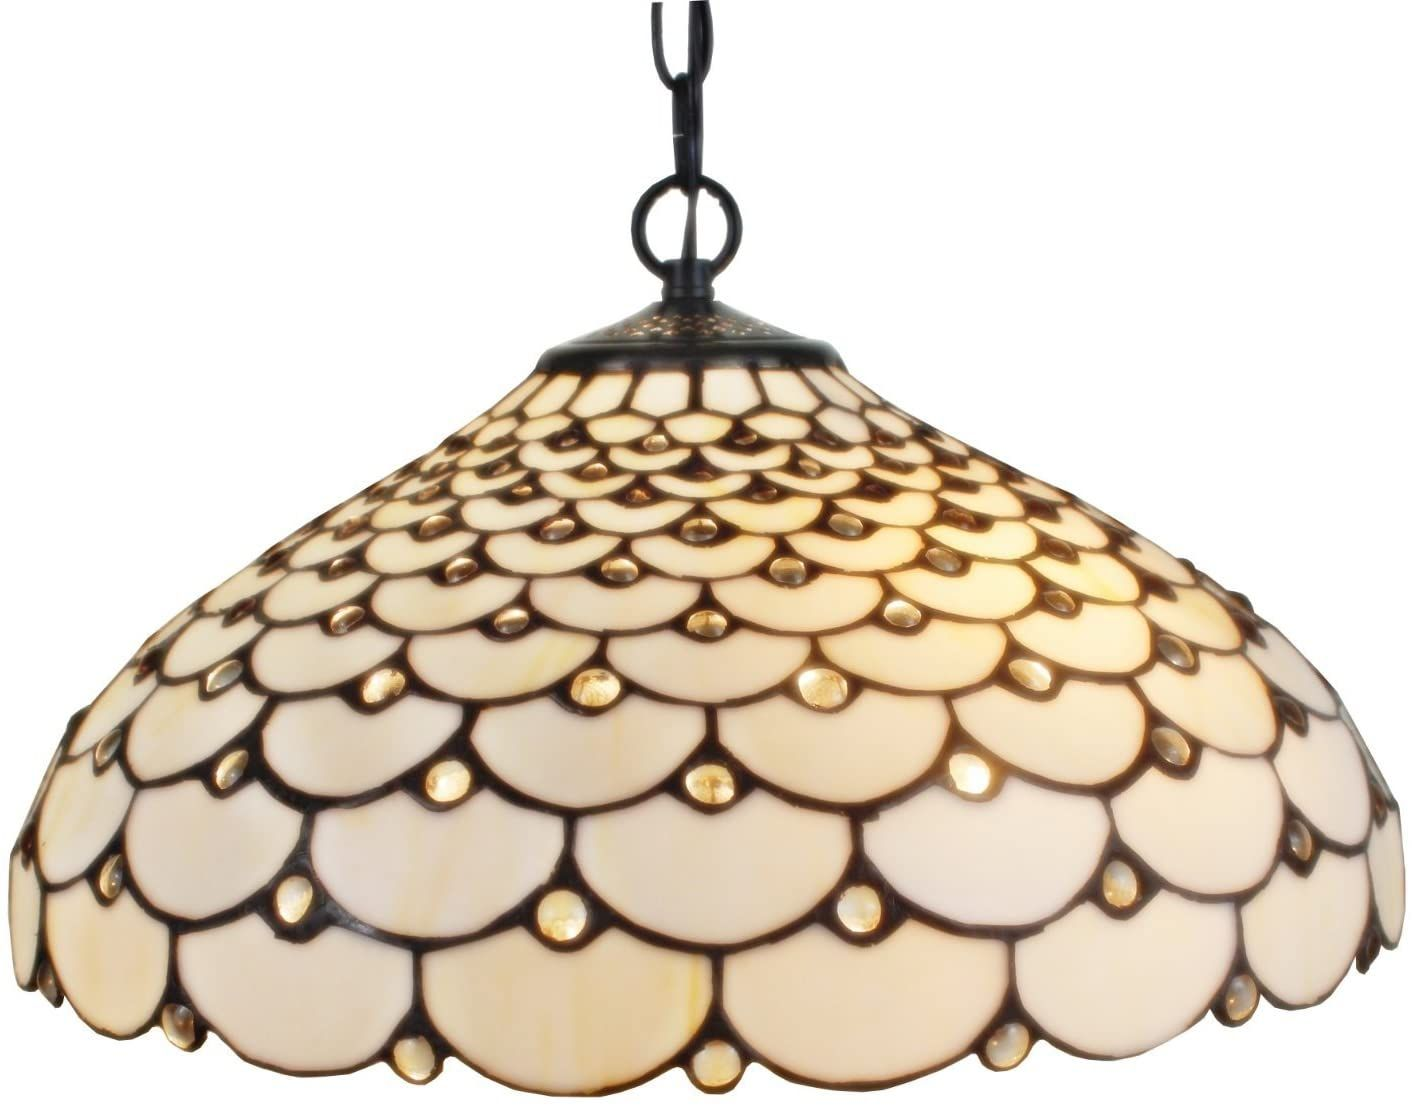 Amora Lighting Tiffany Style Hanging Pendant Lamp White Jeweled Ceiling 18 Wide Stained Glass Shade Vintag Tiffany Style Hanging Pendants Hanging Pendant Lamp